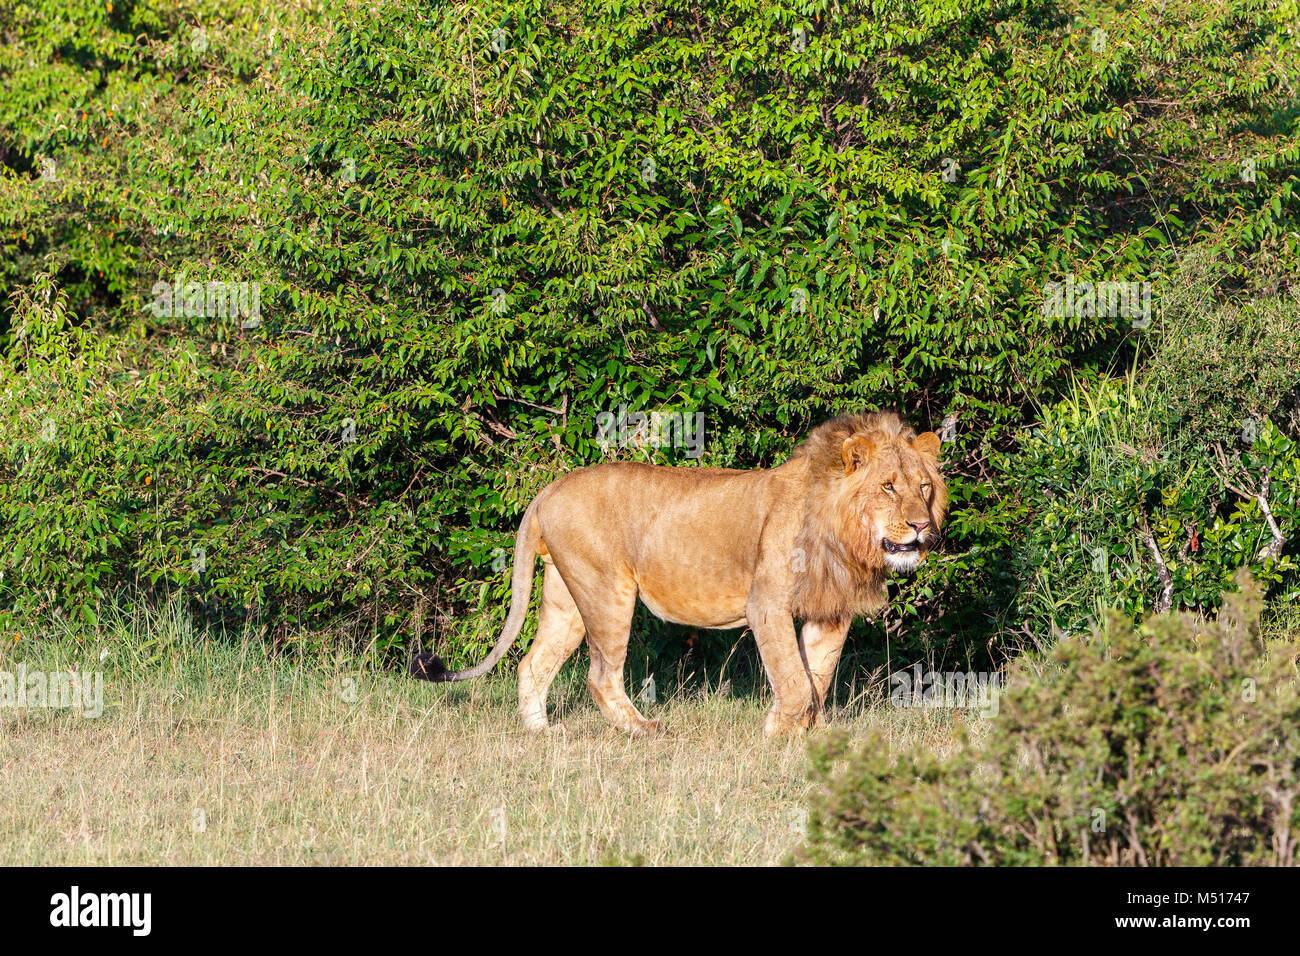 Shrubbery with a male lion - Stock Image